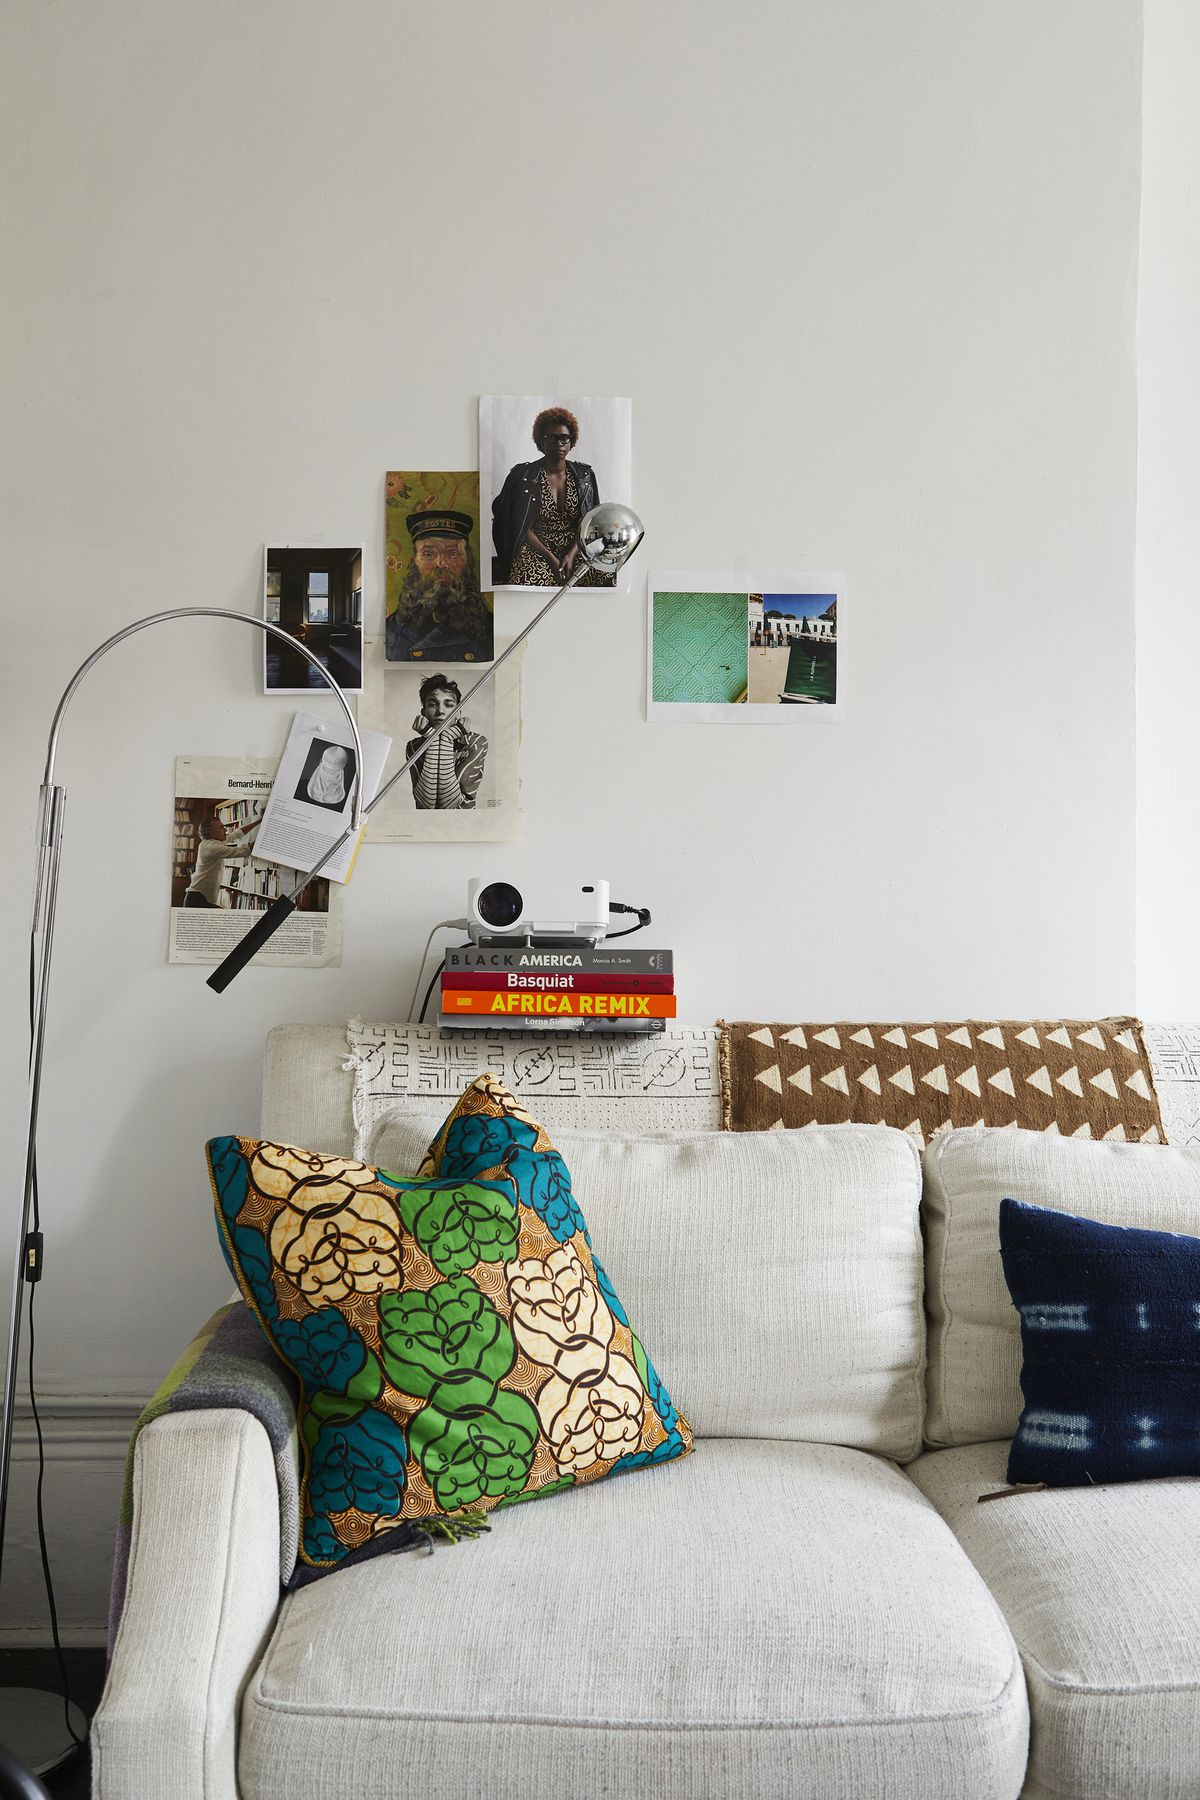 Brightly colored textiles from Africa drape the sofa and are used to make pillows.